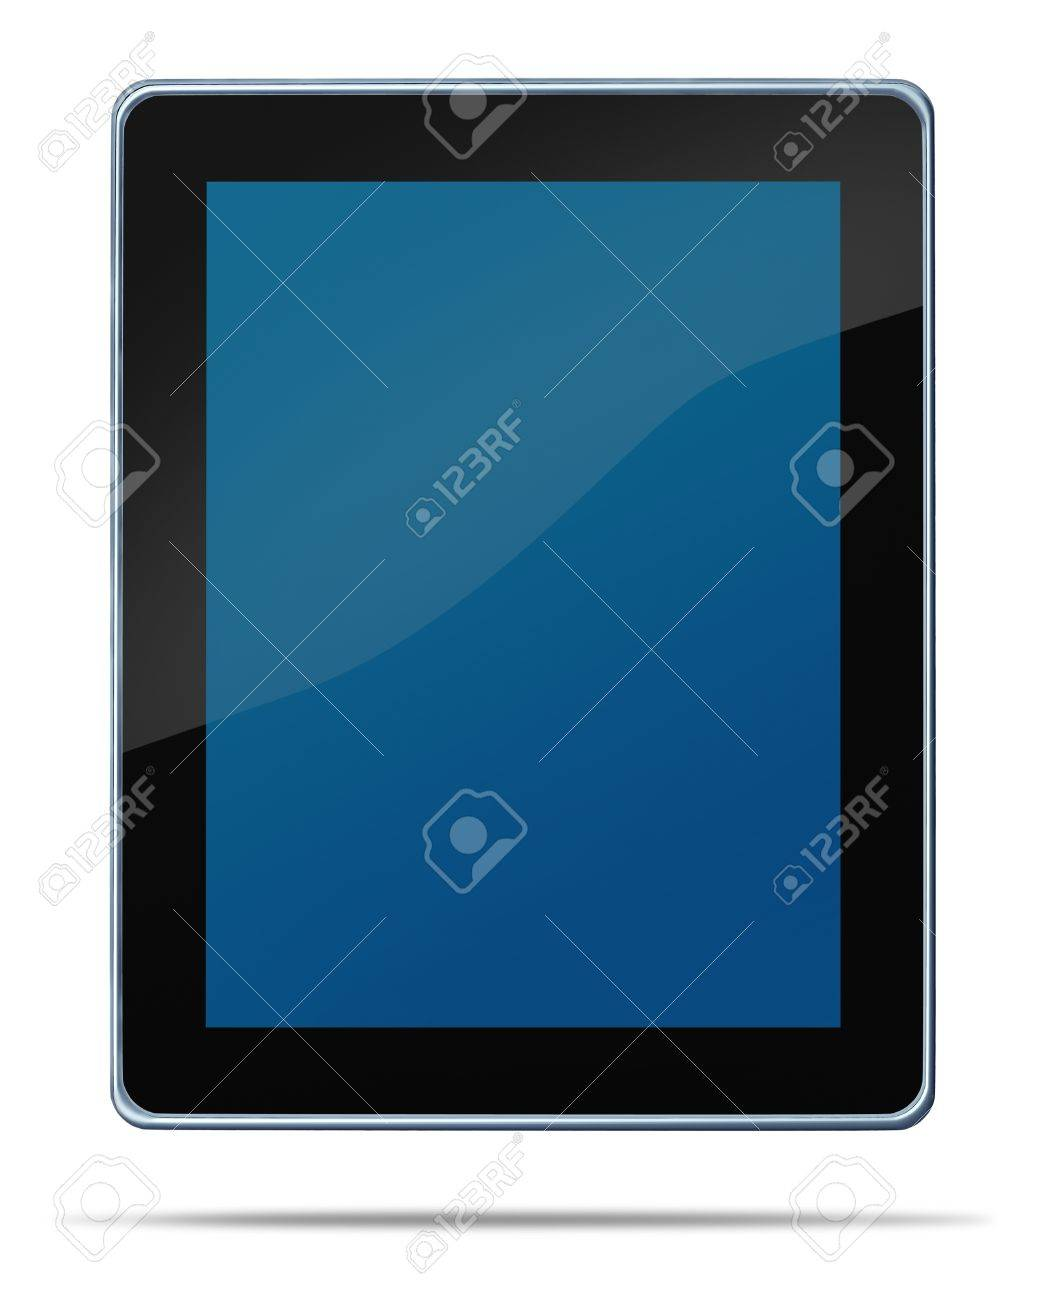 Tablet computerdigital display touch screen electronic gadget on a white background and shadow representing the technology concept of computing media tool for digital content distribution as digiat music e-books movies and internet browsing. Stock Photo - 11359695